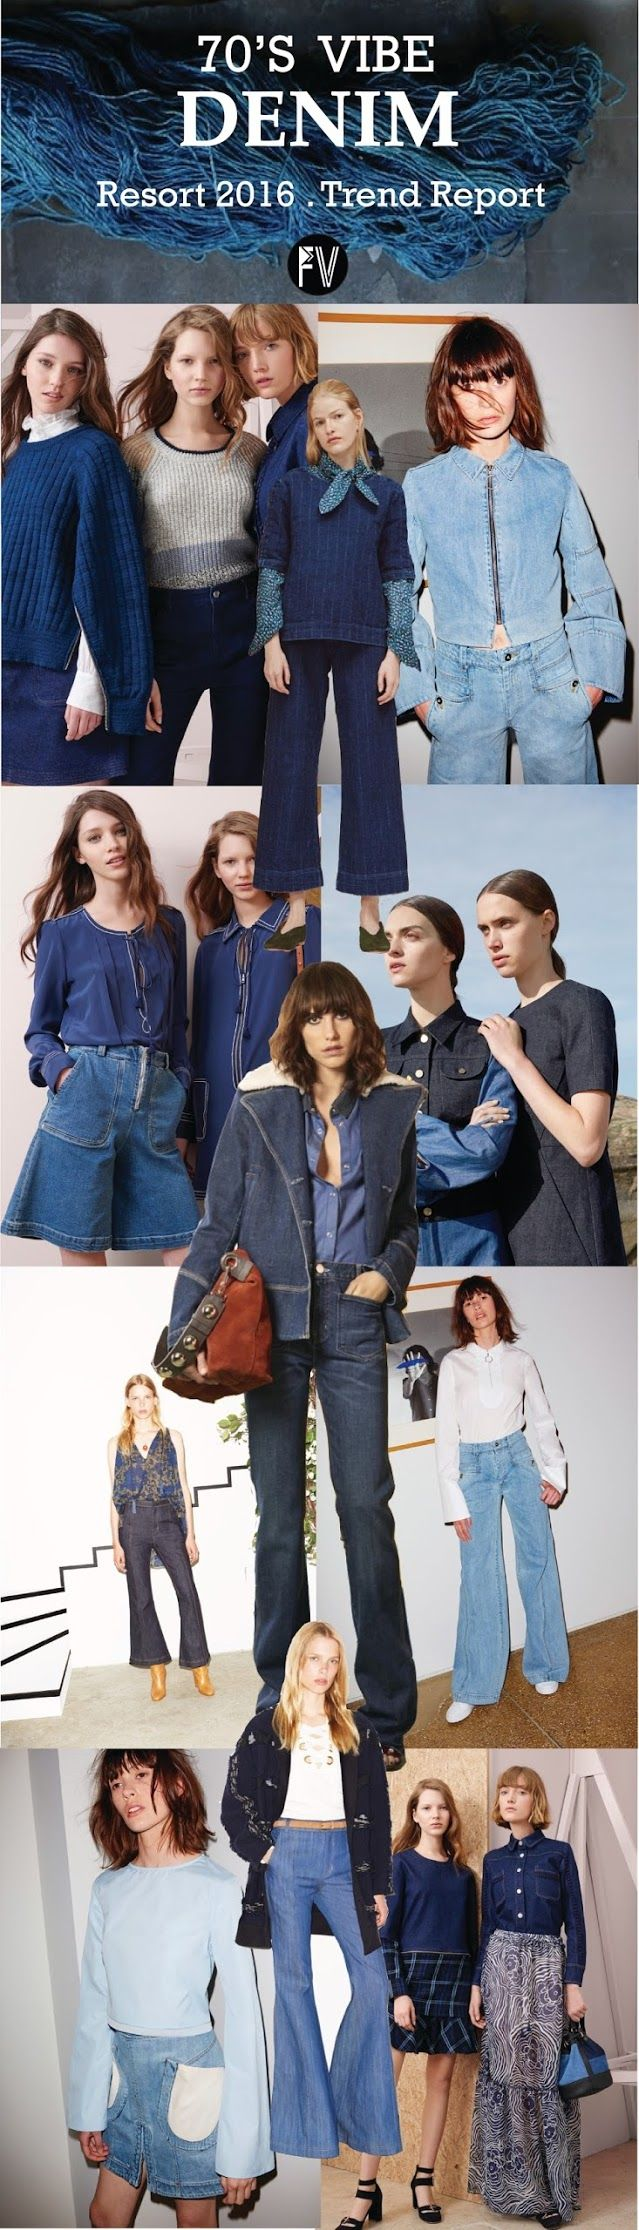 [ TREND REPORT ] DENIM . 70'S VIBE - RESORT 2016